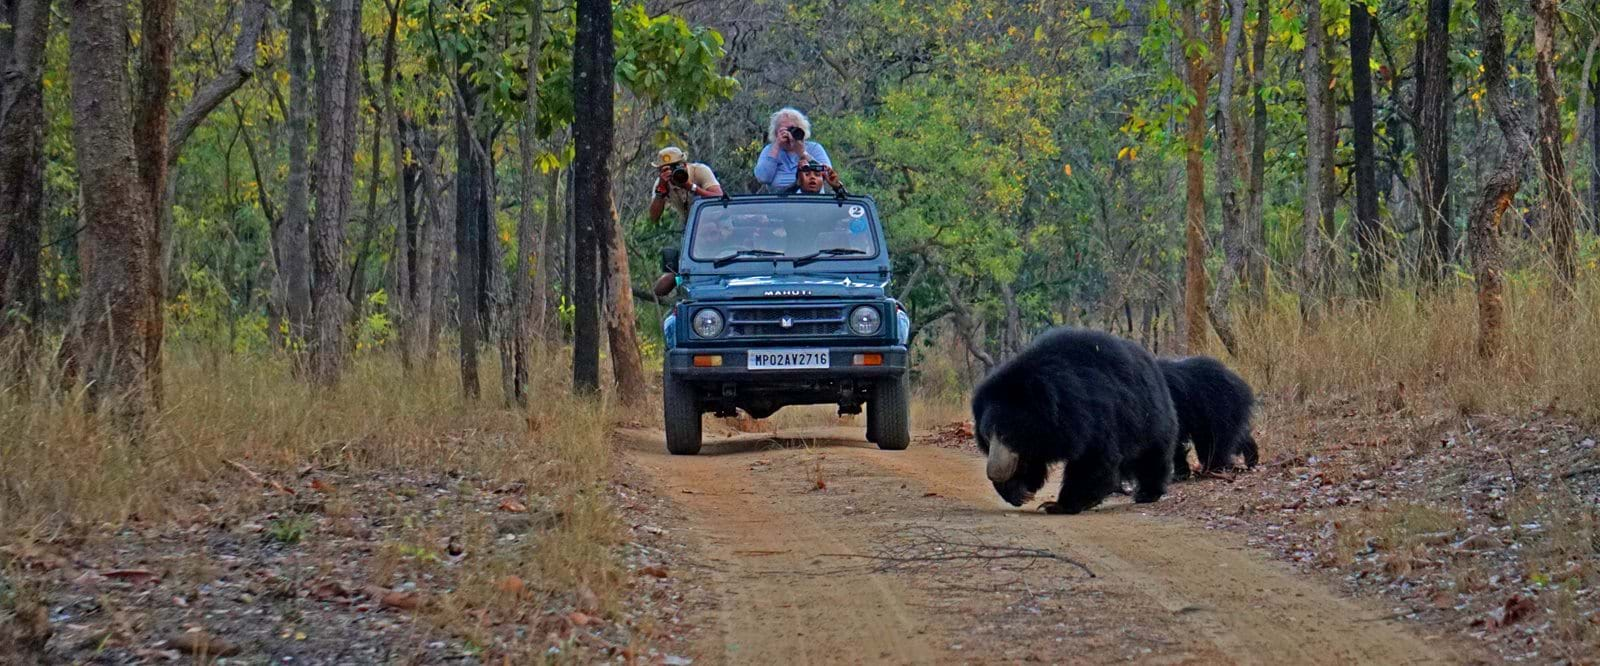 Sloth bear, safari, india, wildlife,